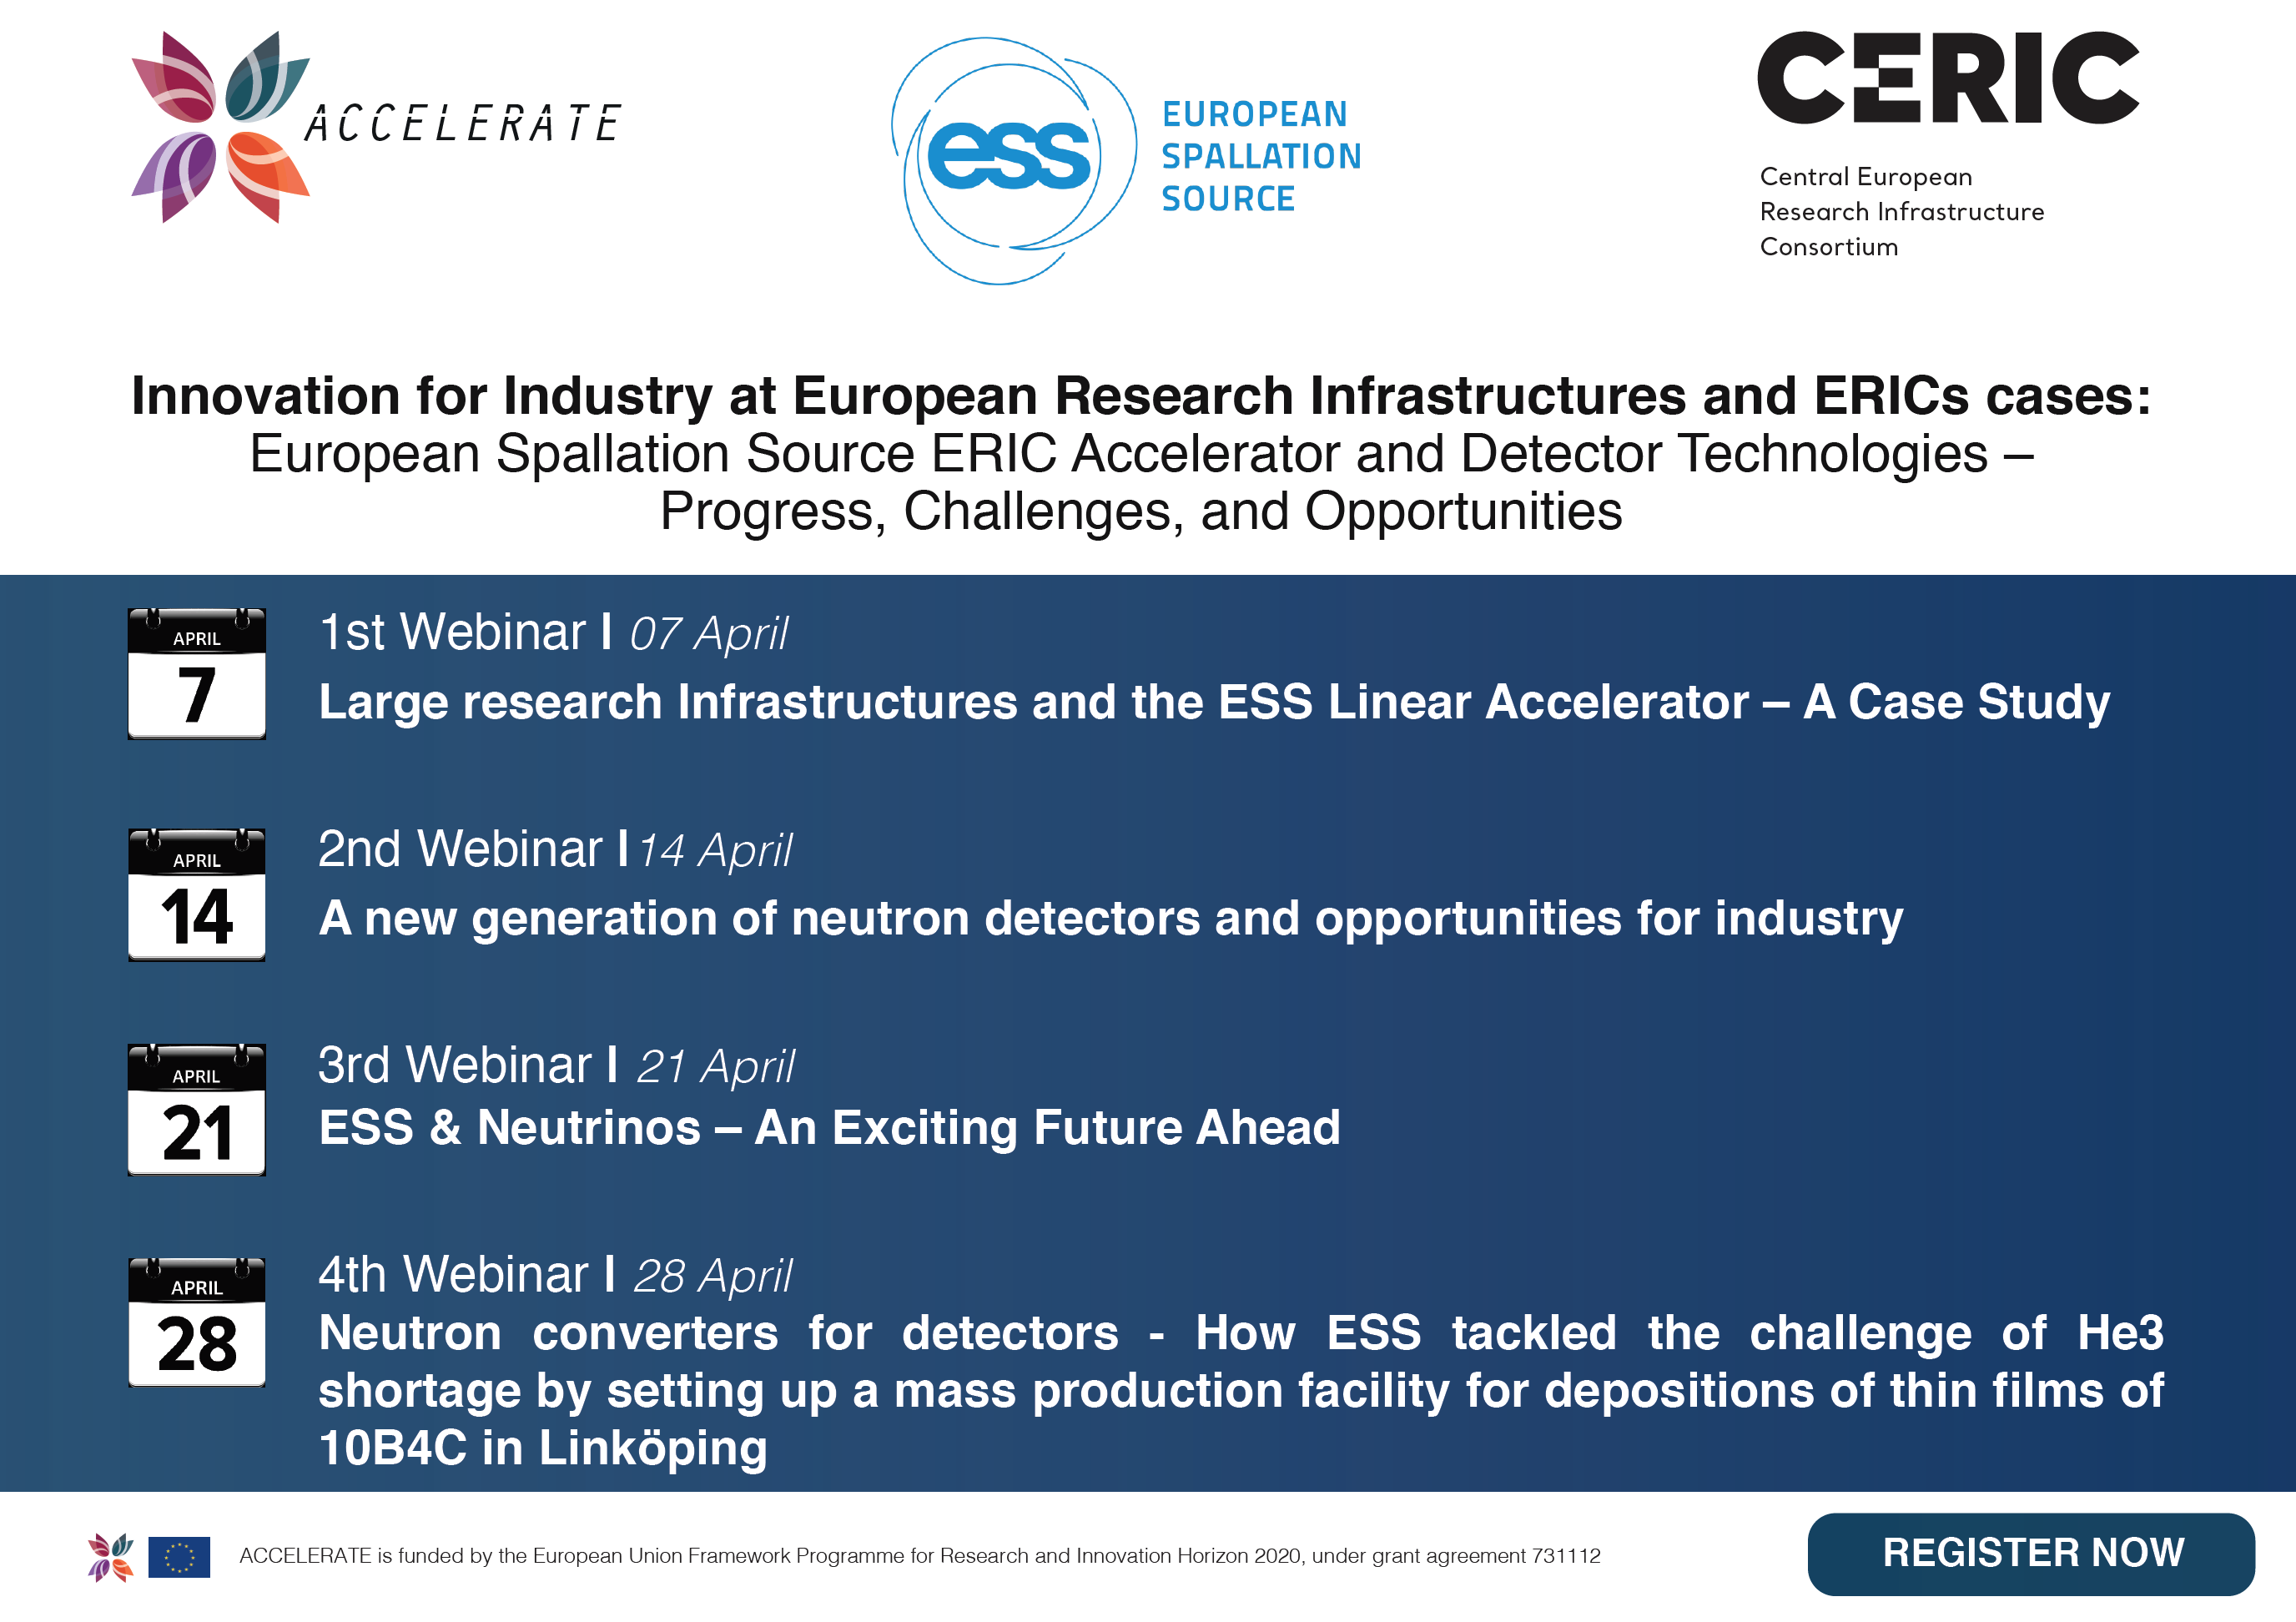 Innovation for industry at European Research Infrastructures and ERICs cases: European Spallation Source ERIC Accelerator and Detector Technologies – Progress, Challenges, and Opportunities